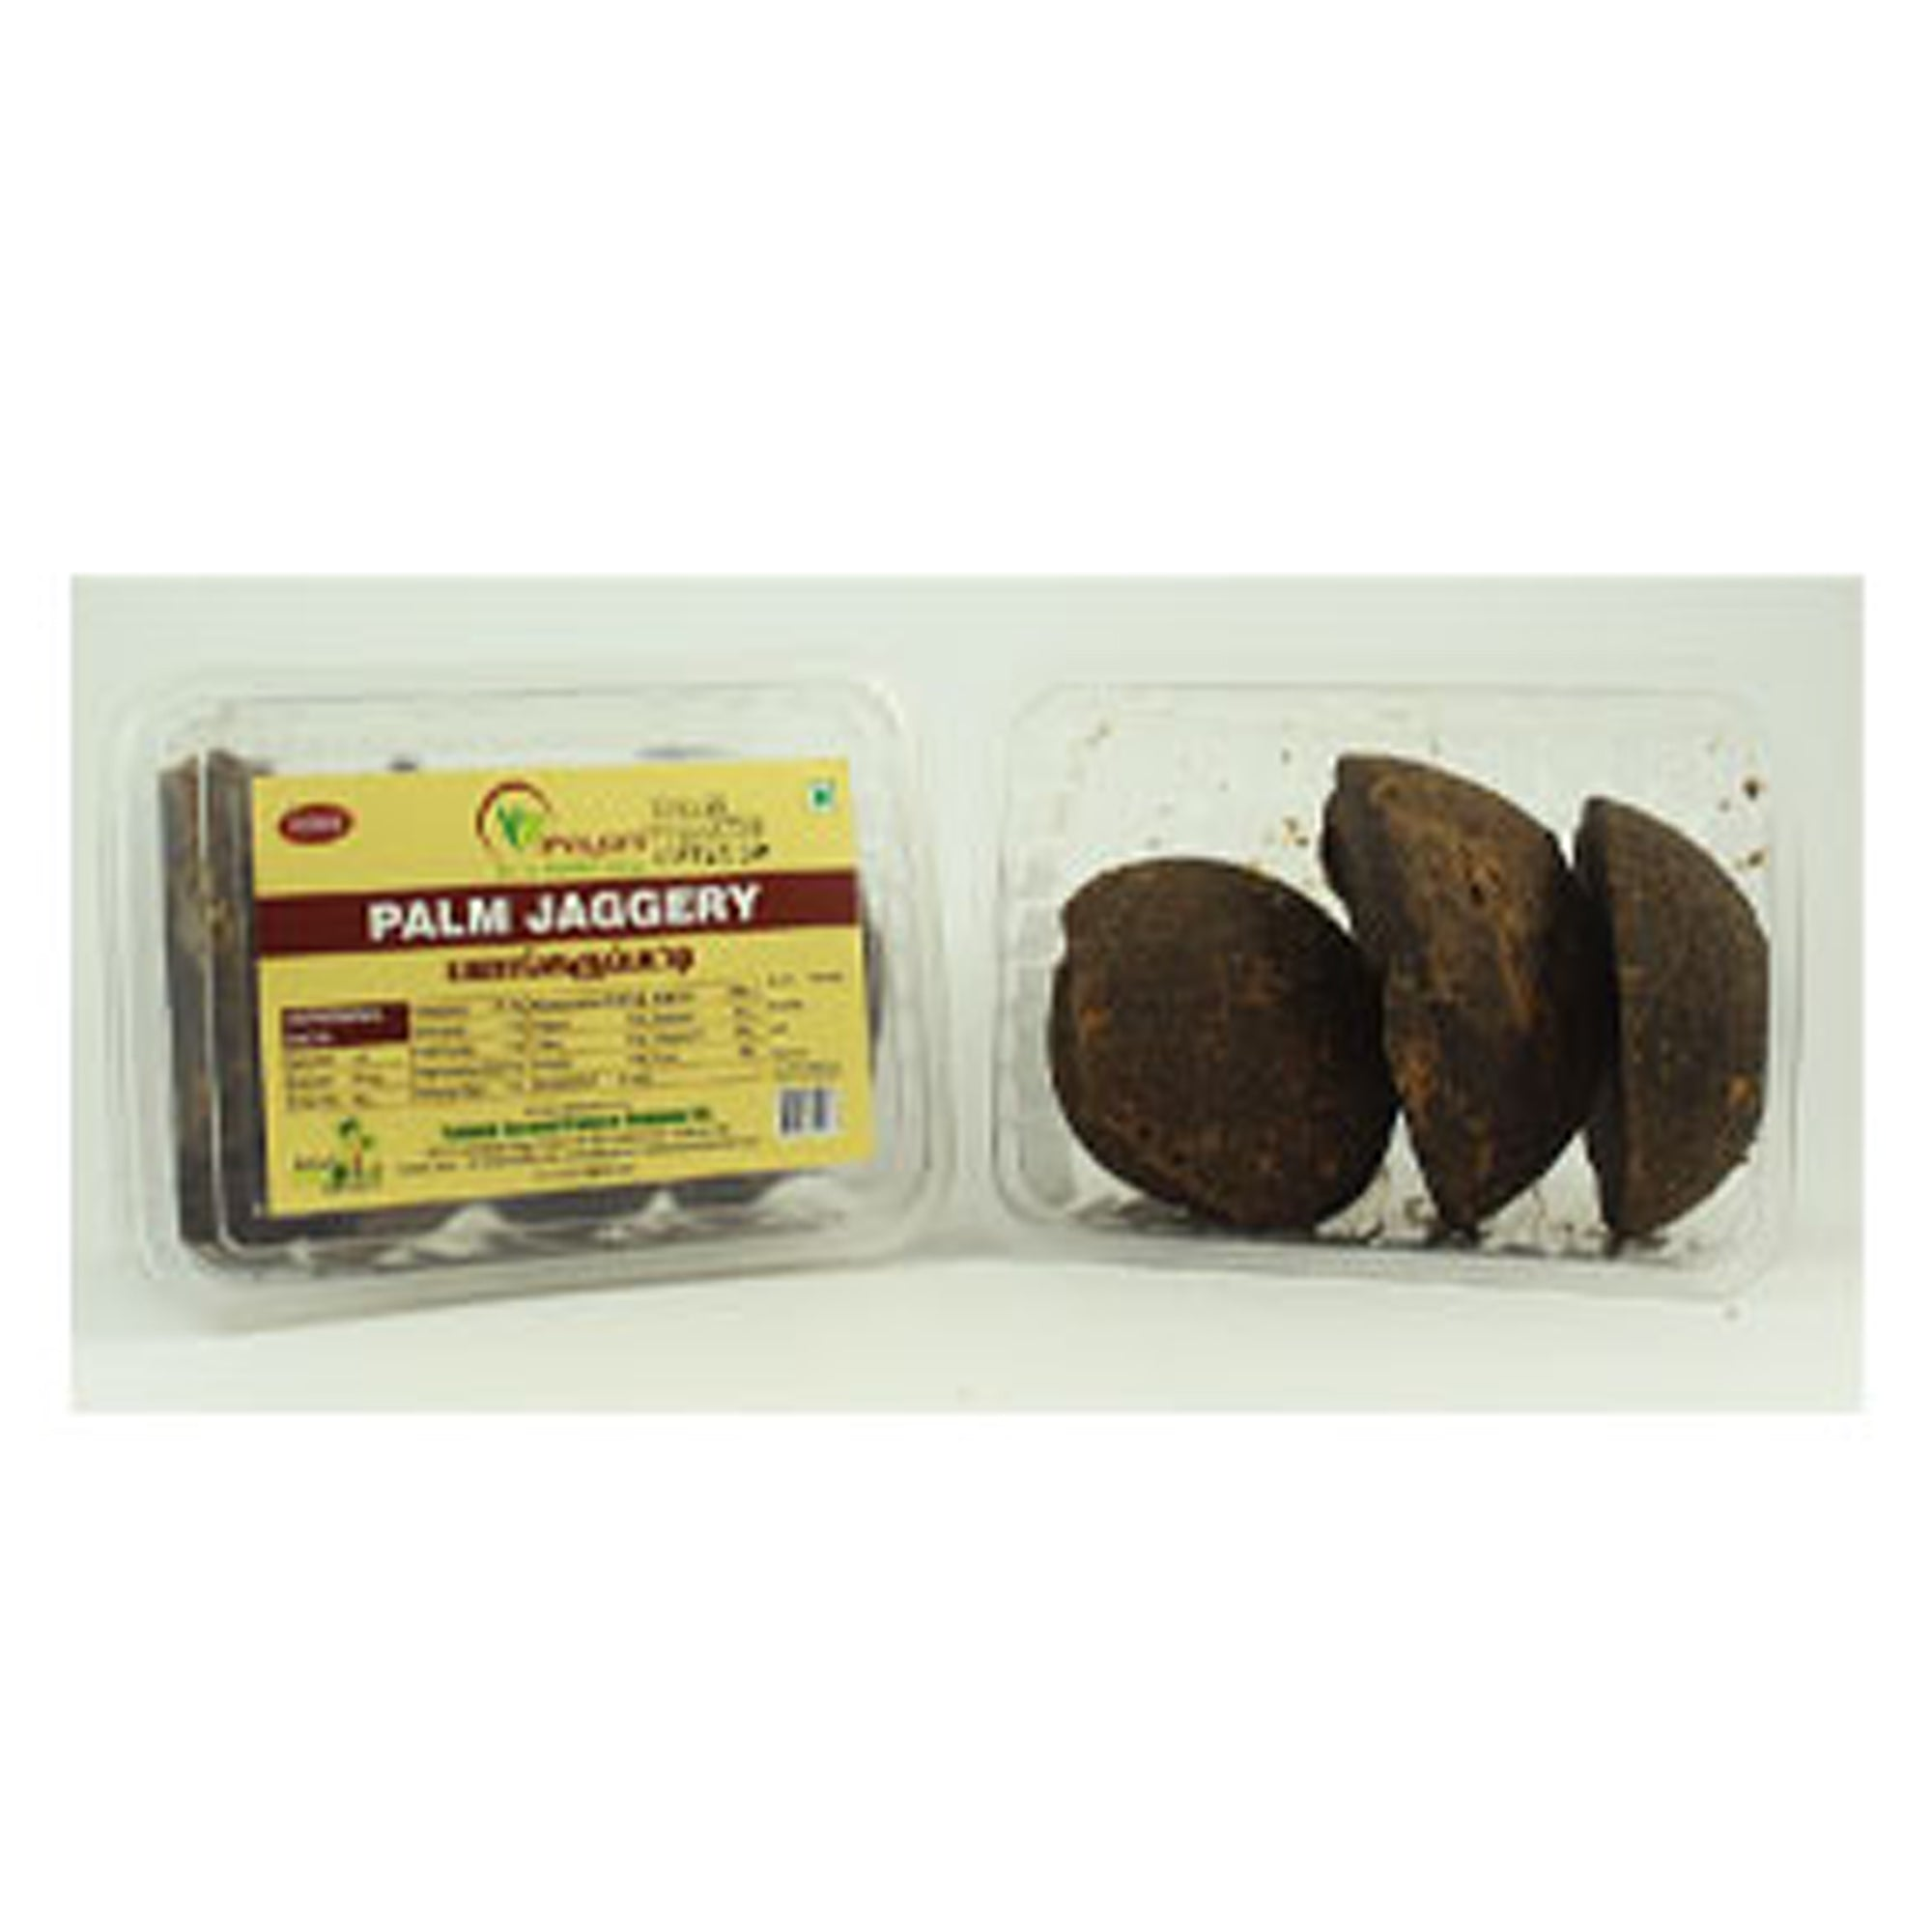 IMAYAM PALM JAGGERY 500GM MRP RS200